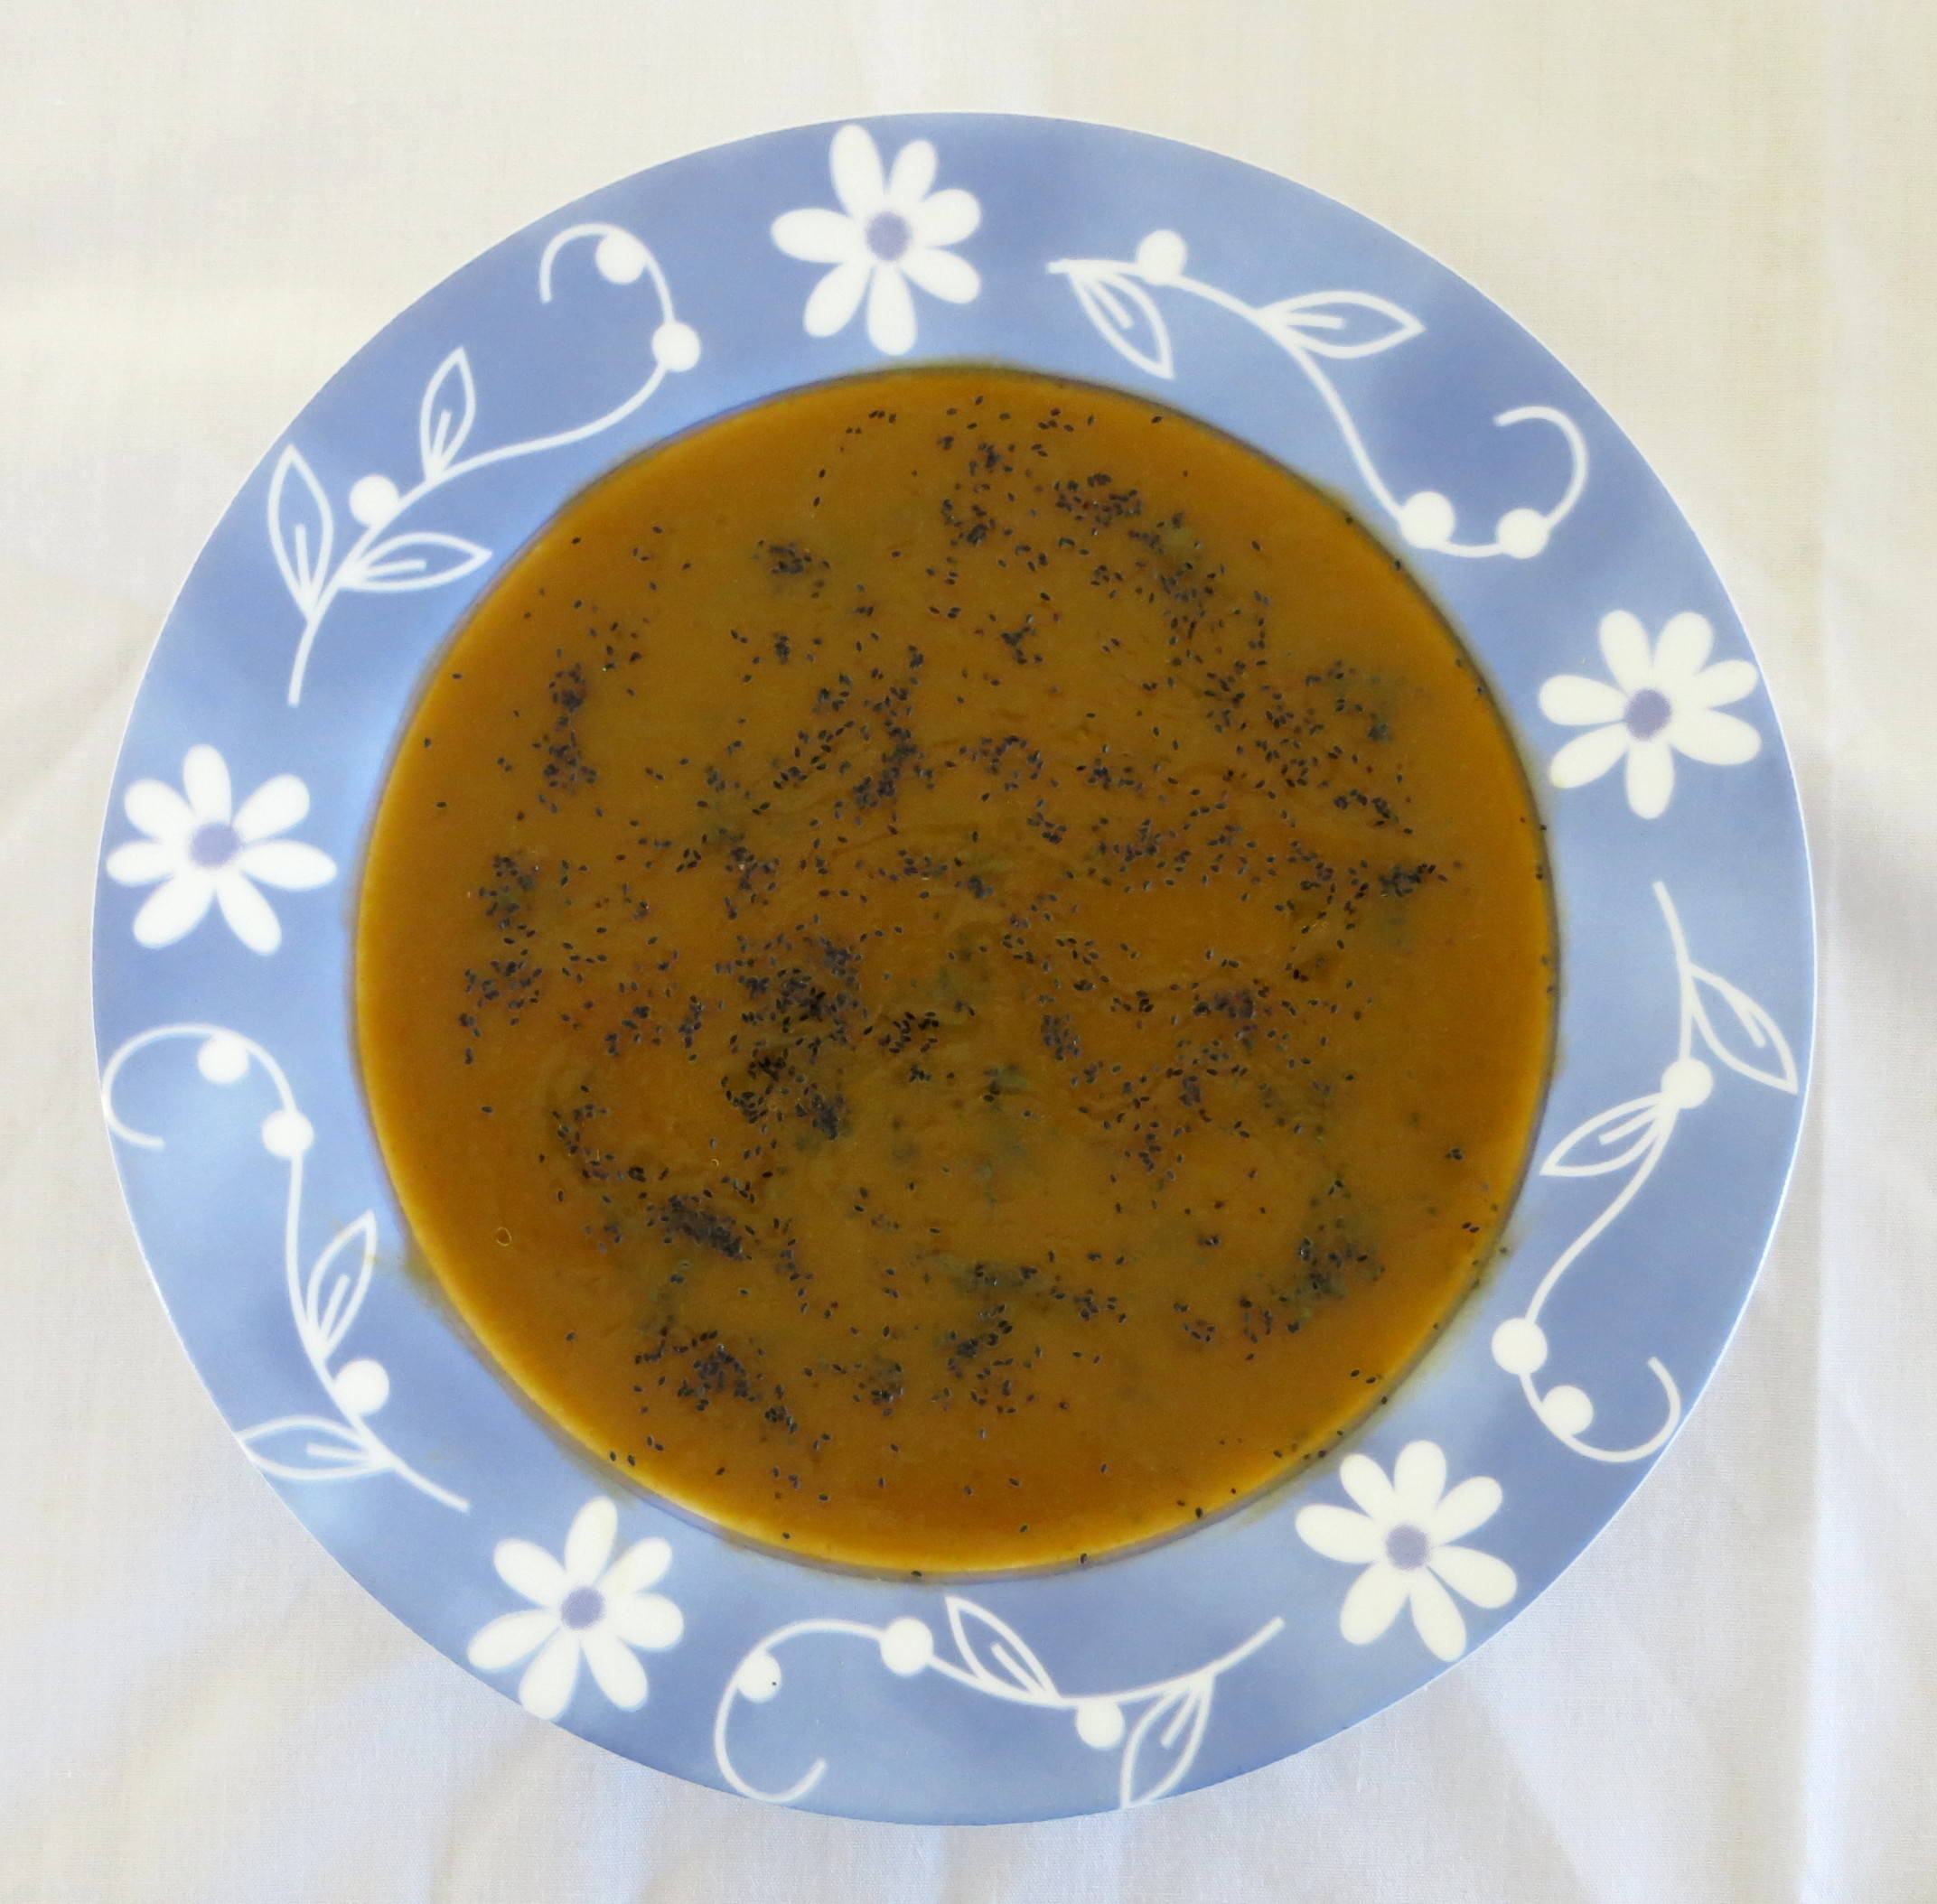 Plate with millet and tukmaria soup